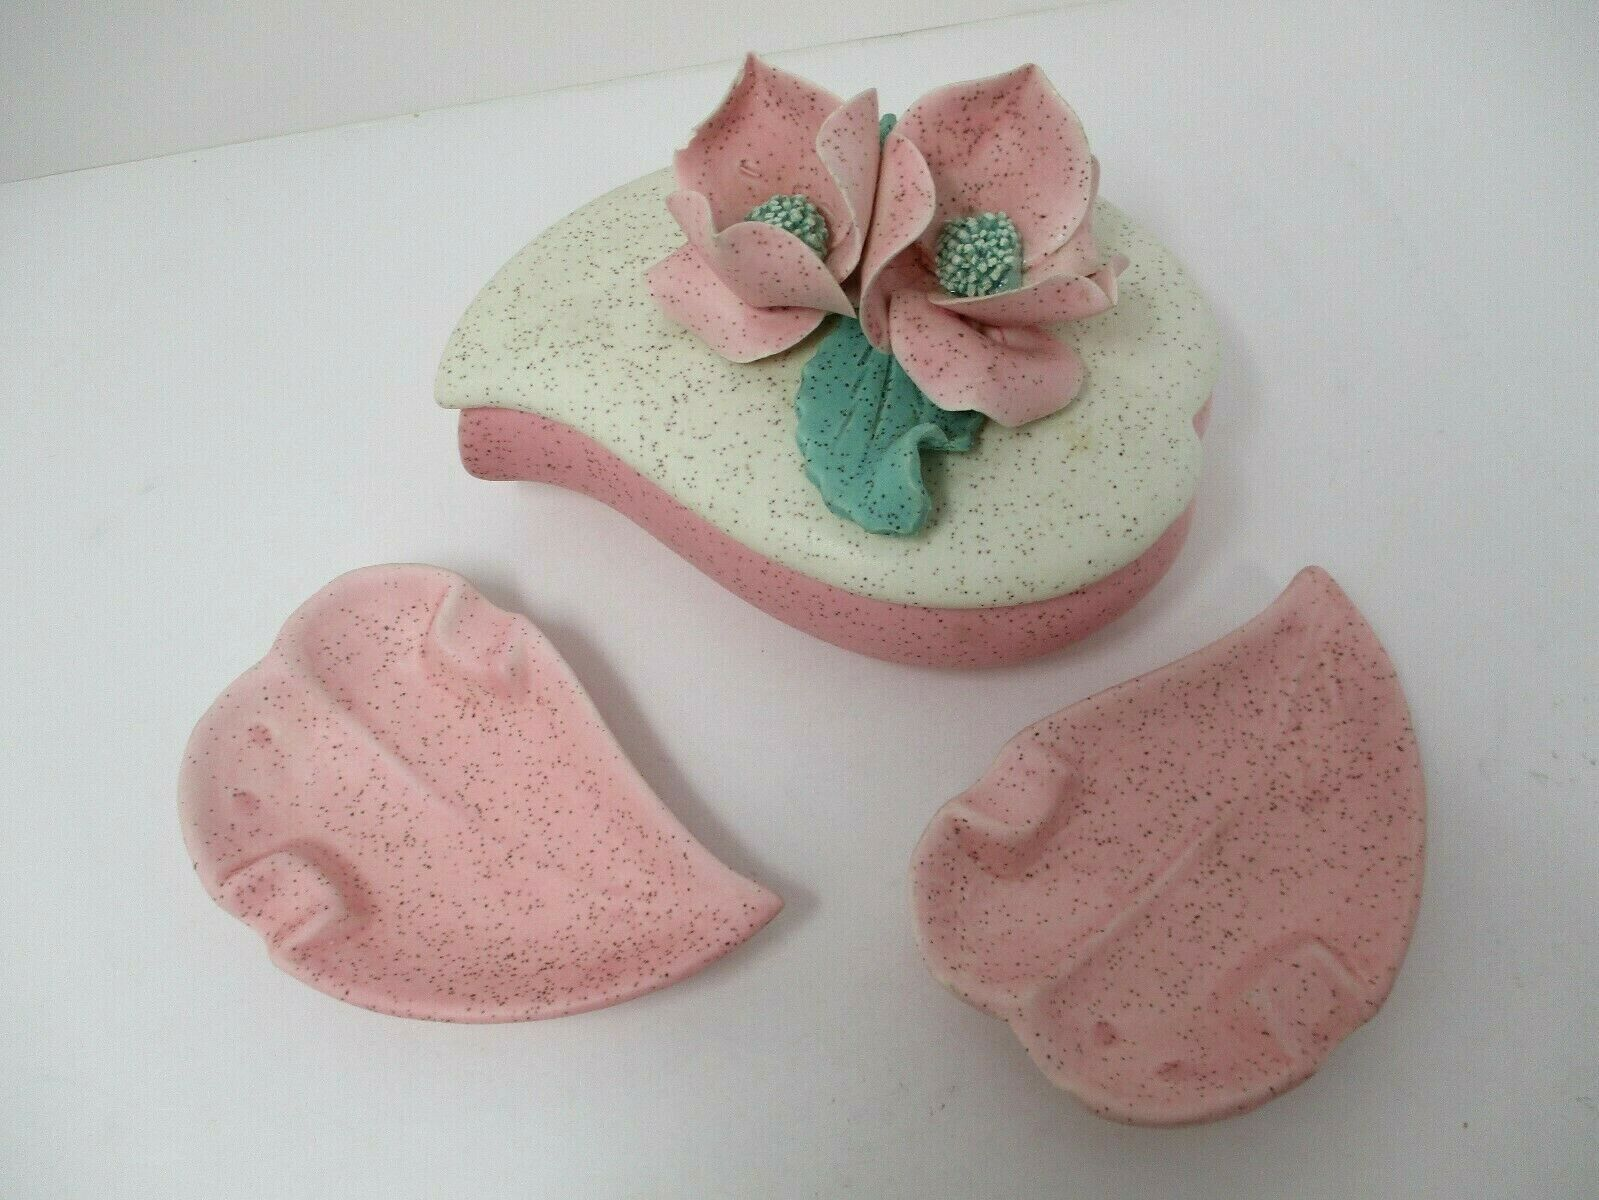 Vintage Speckled Pink White Bisque Heart Shaped W/ Roses 3 Pc Trinket Box Set